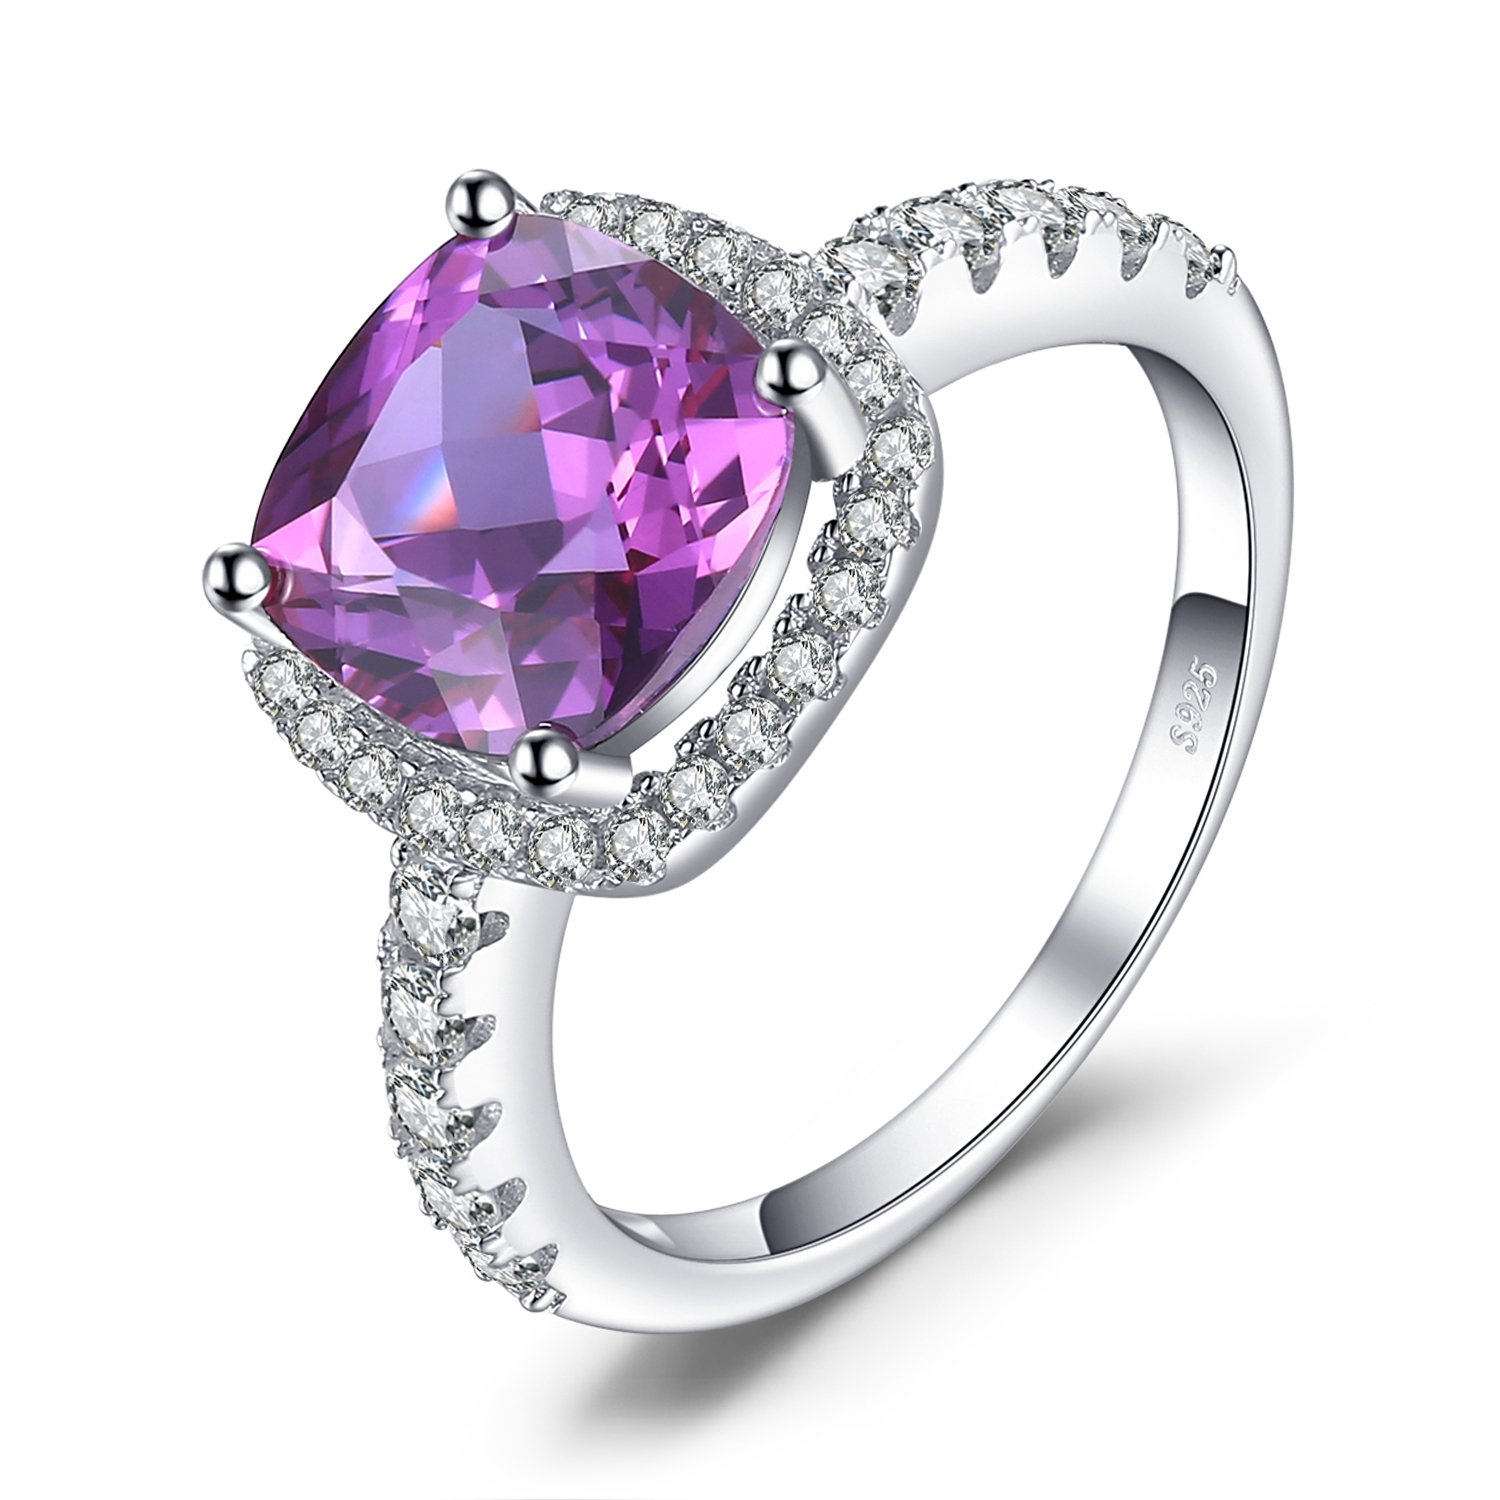 JewelryPalace luxe 5.35ct Alexandrite Saphir de Synthese Cocktail Bague en Argent 925 EU-AR210961